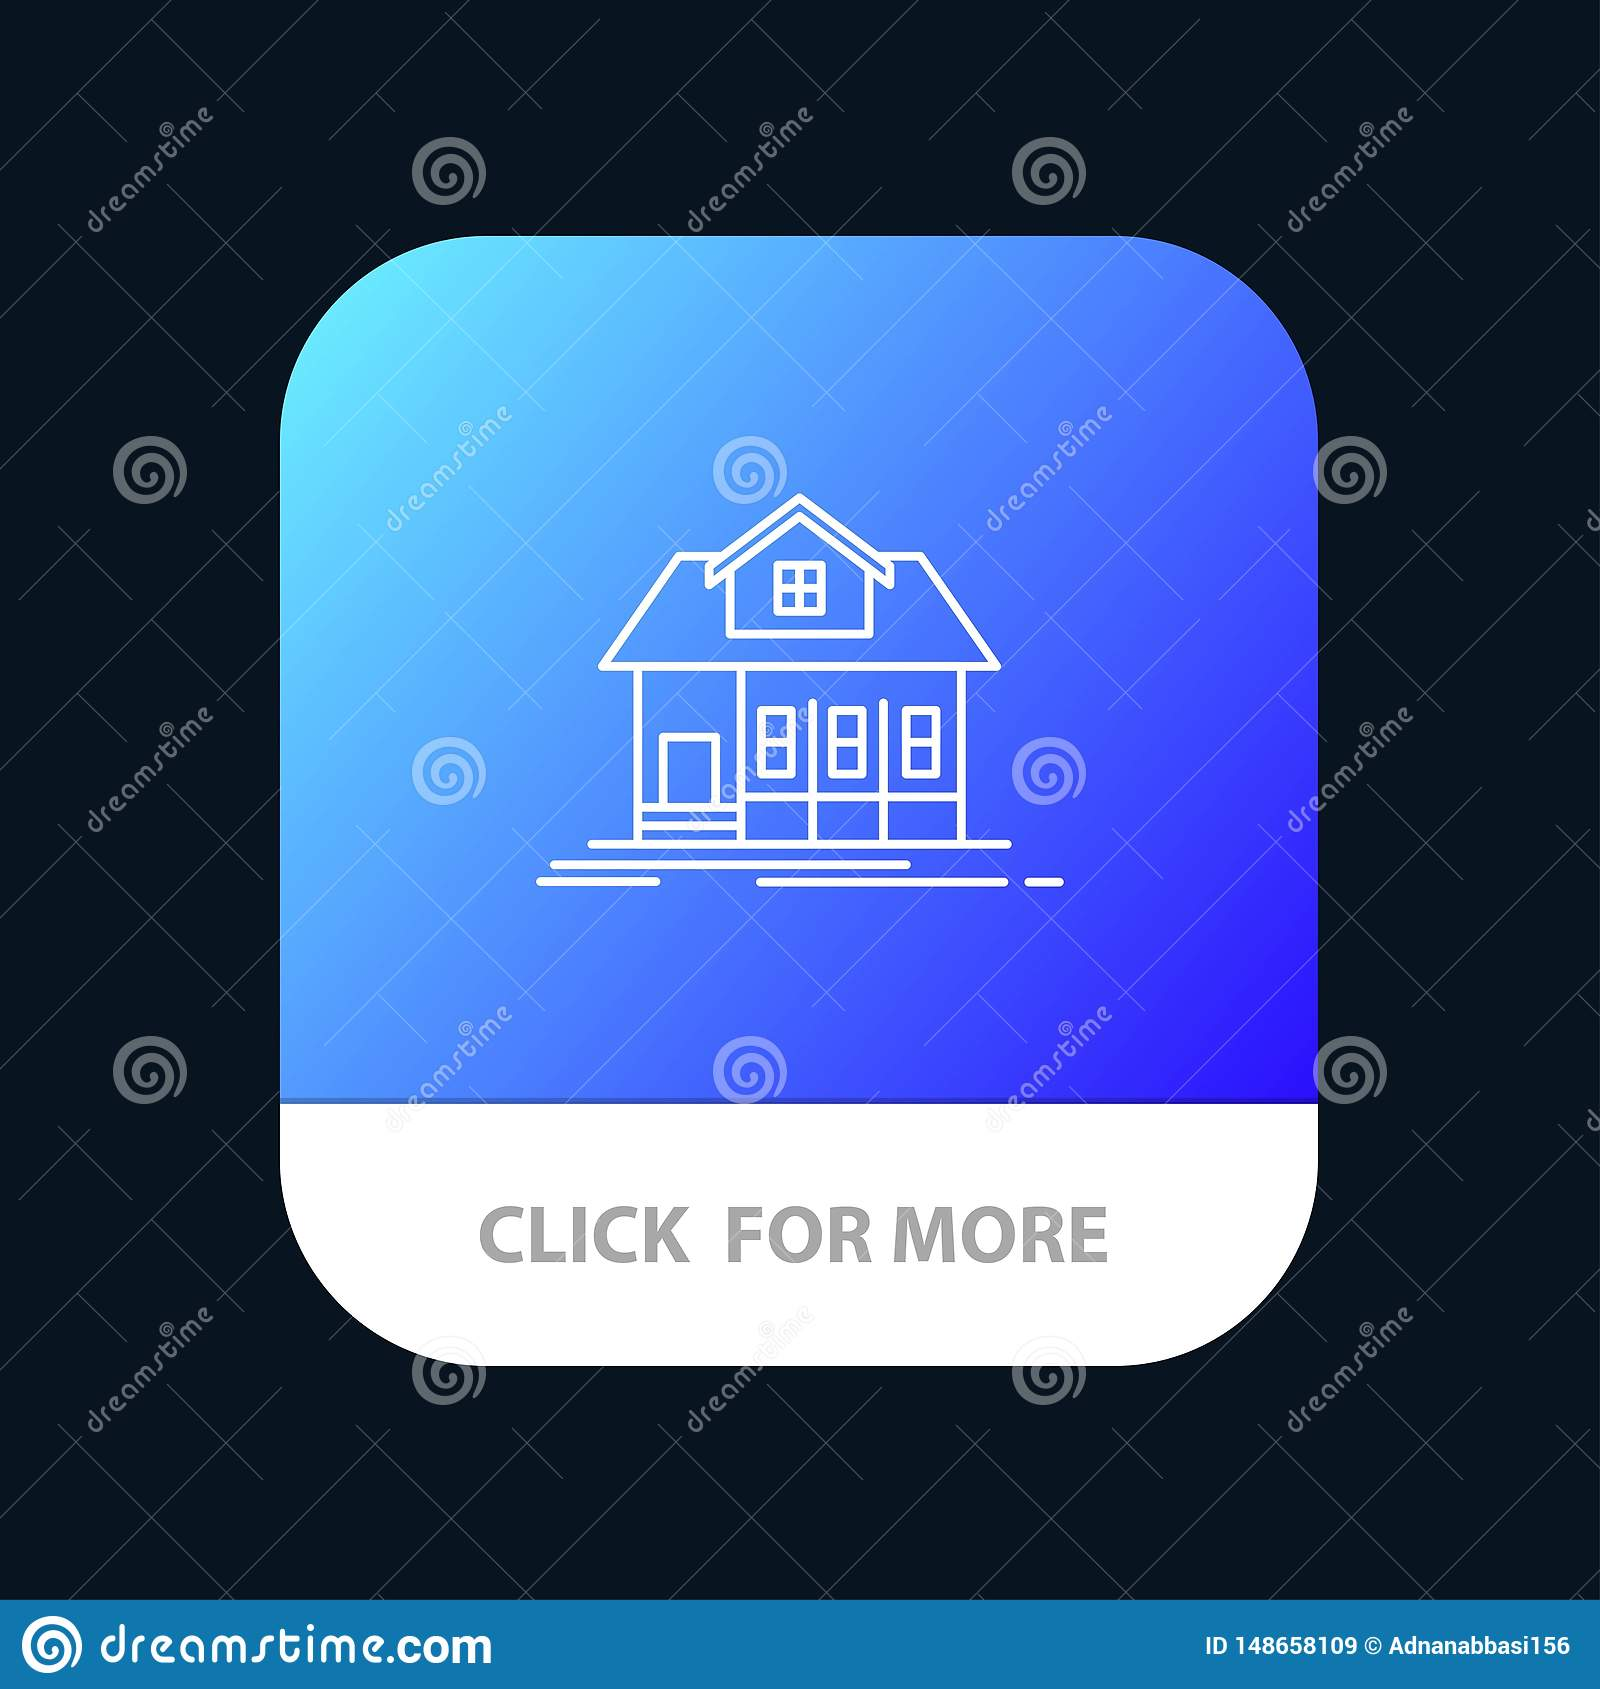 Home, House, Building, Real Estate Mobile App Button. Android and IOS Line Version